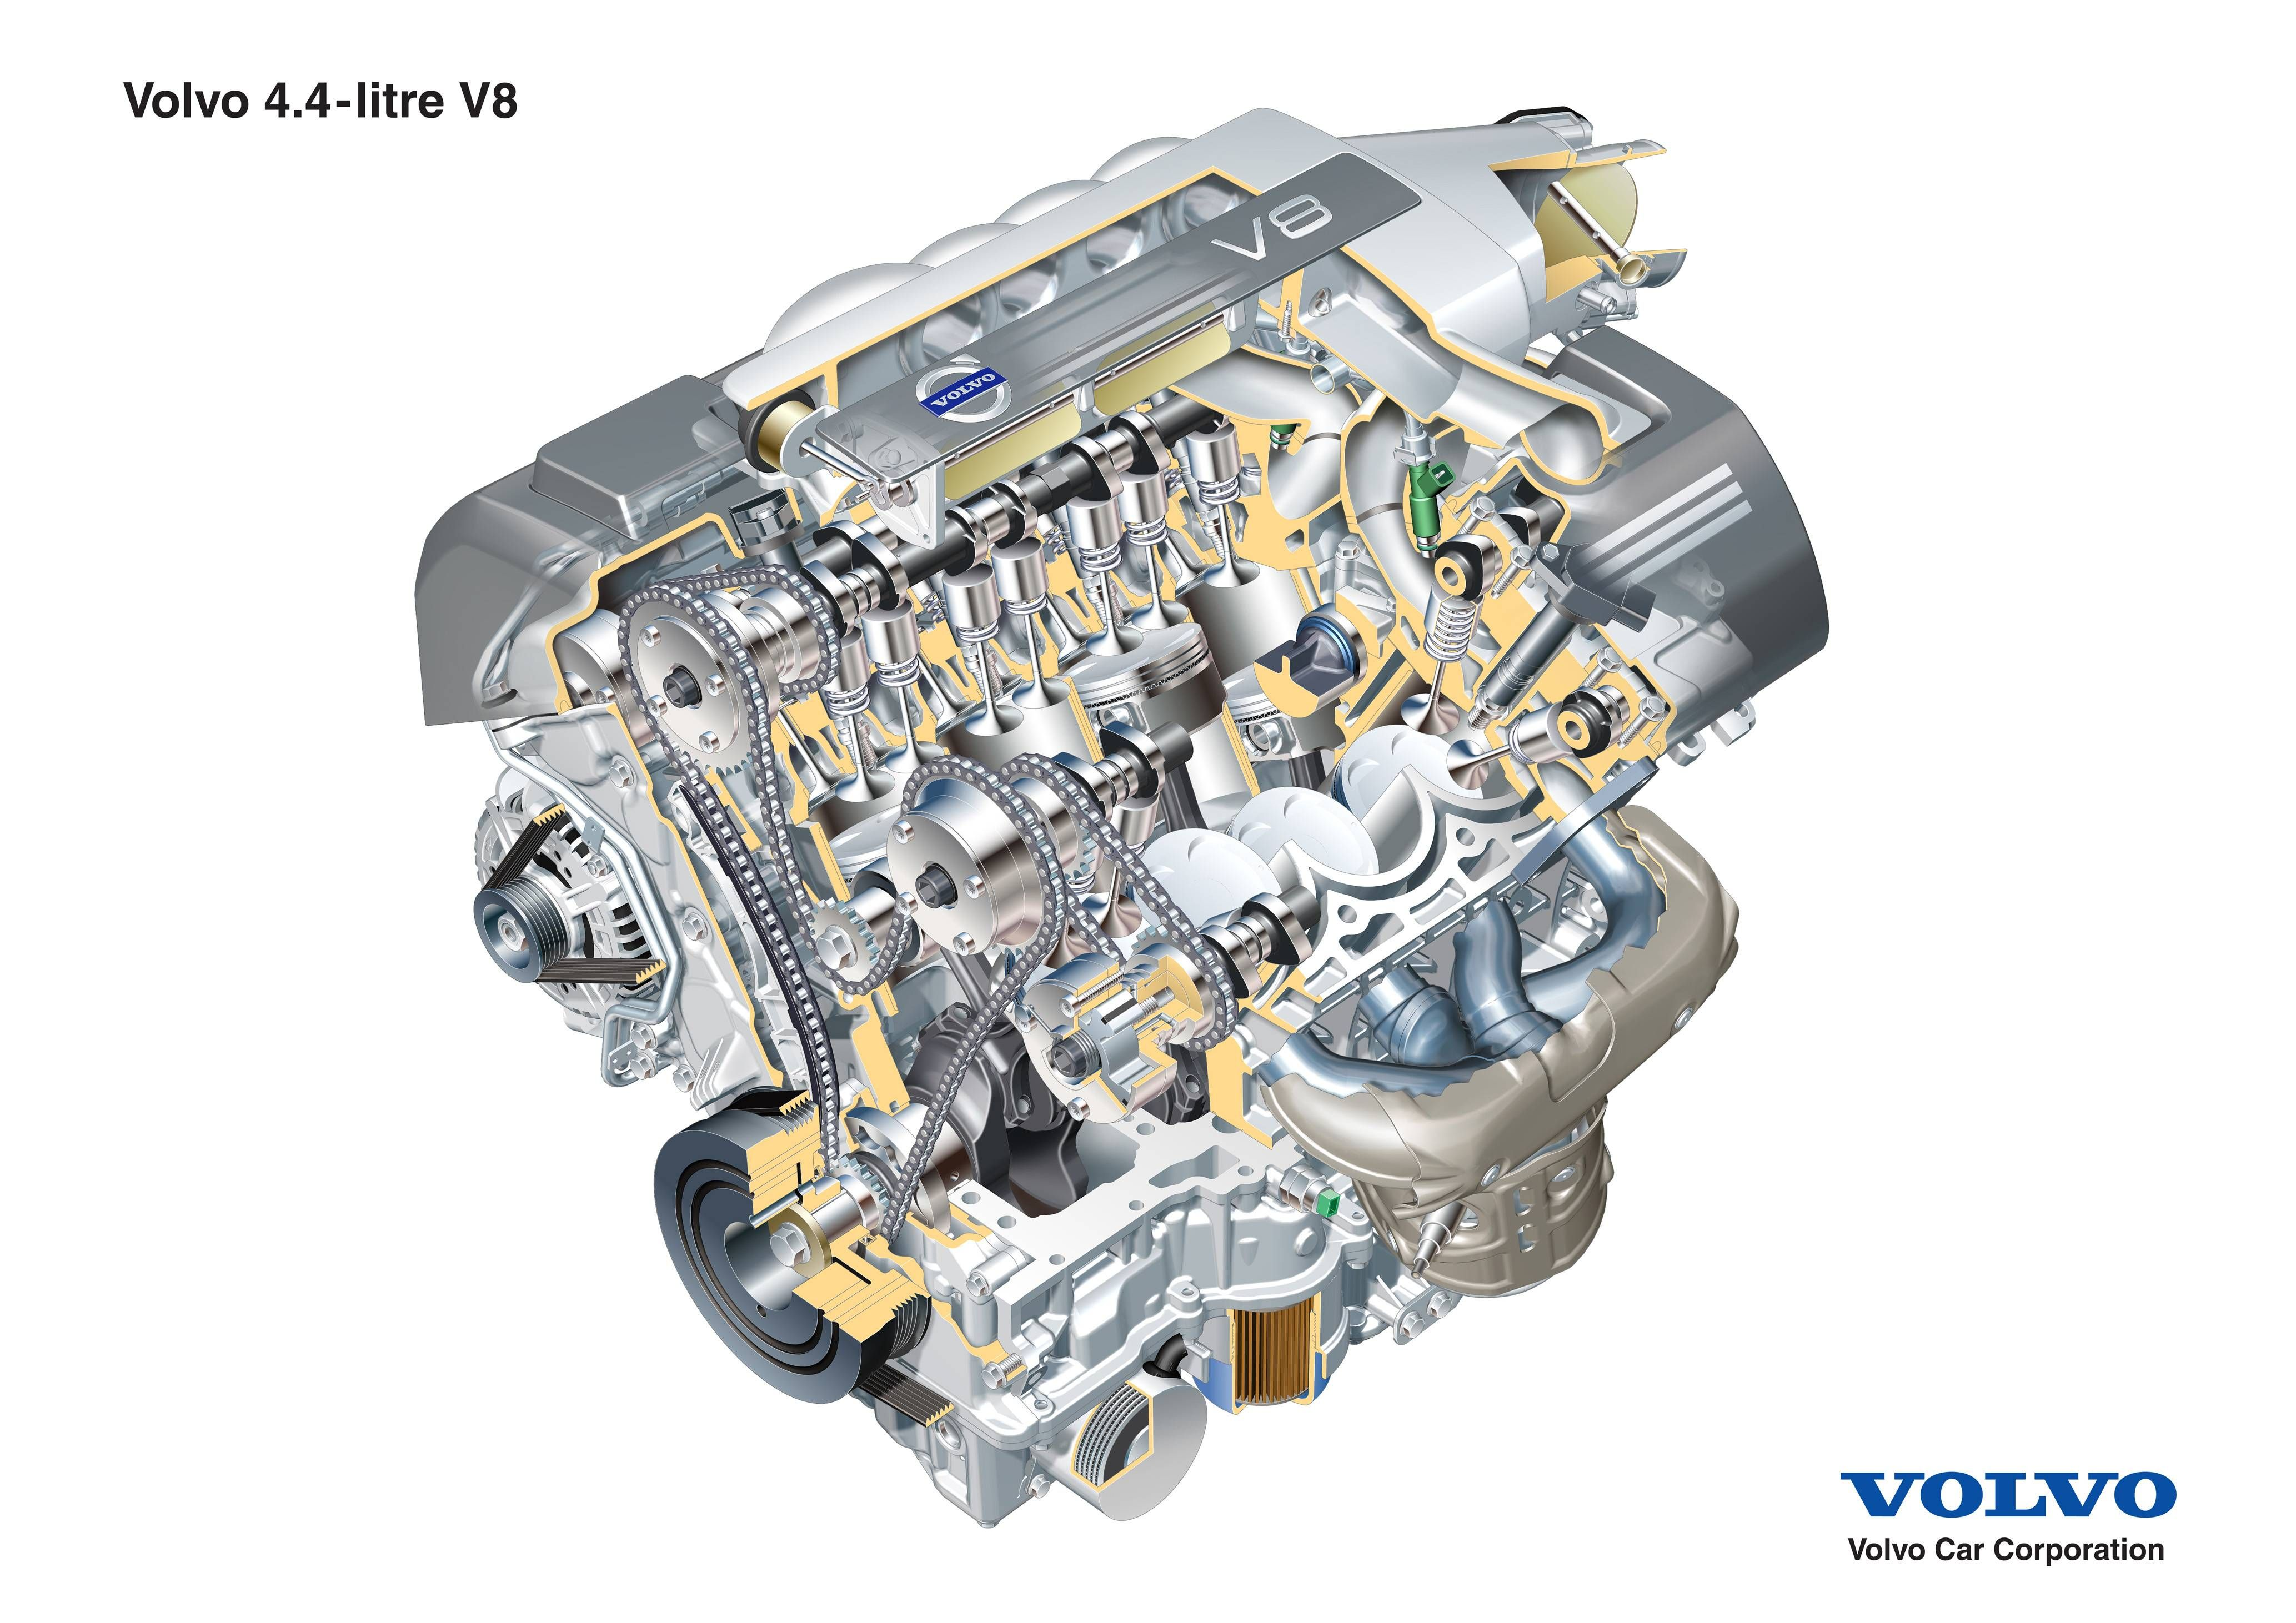 medium resolution of diagram likewise volvo xc90 v8 engine diagram on volvo s80 engine rh yuula co volvo xc90